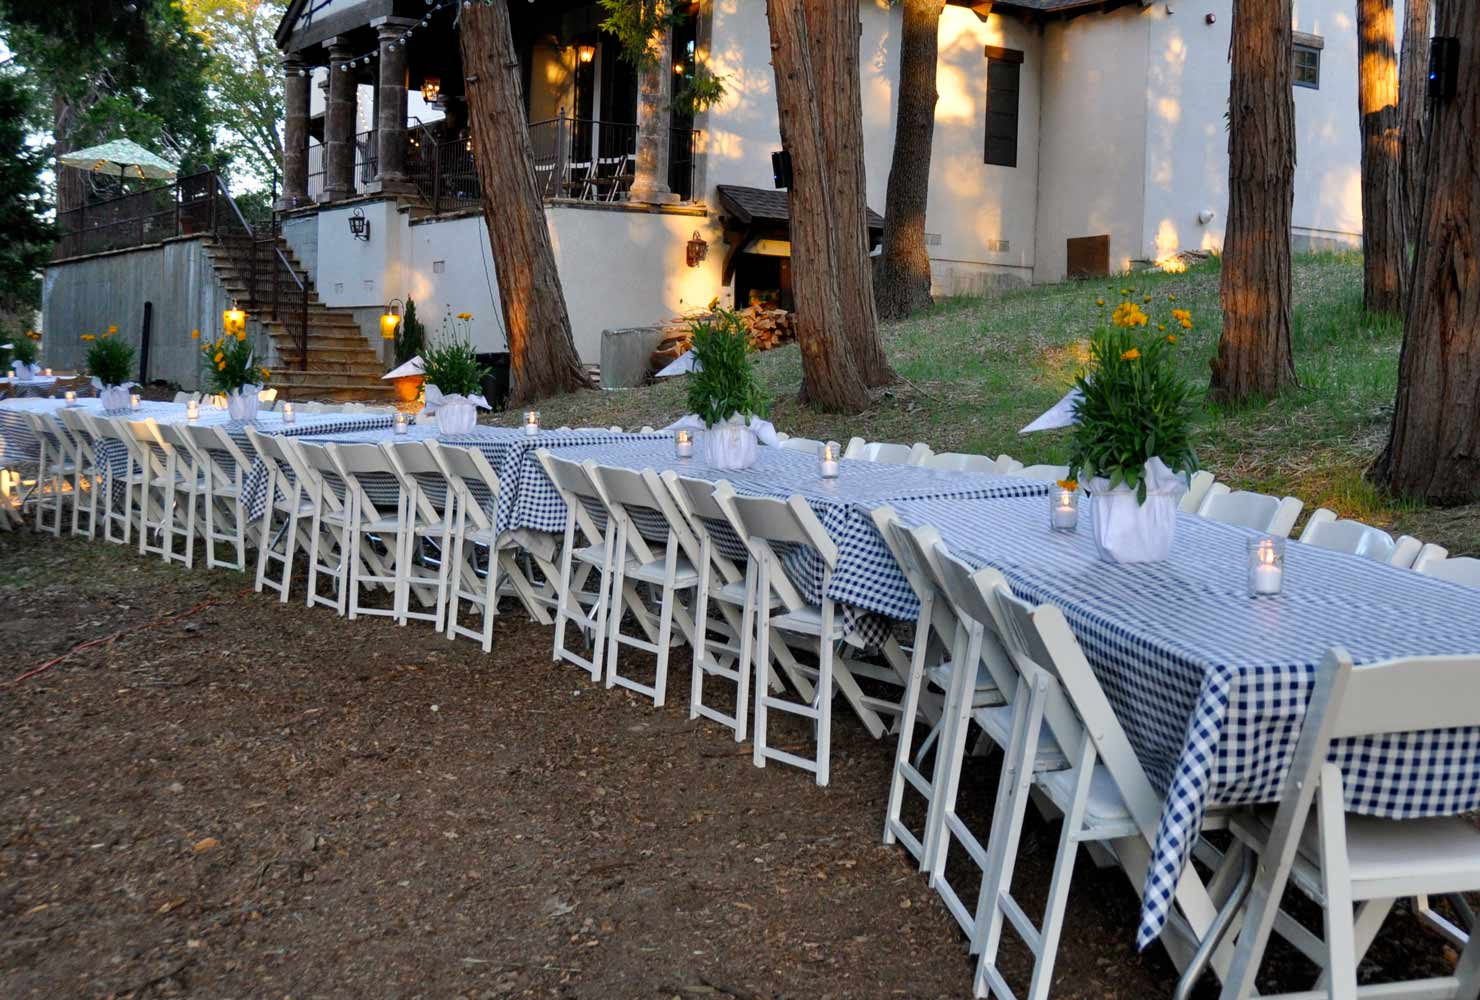 90 Graduation Party Ideas For High School College 2019 Shutterfly intended for Backyard Graduation Party Decorating Ideas